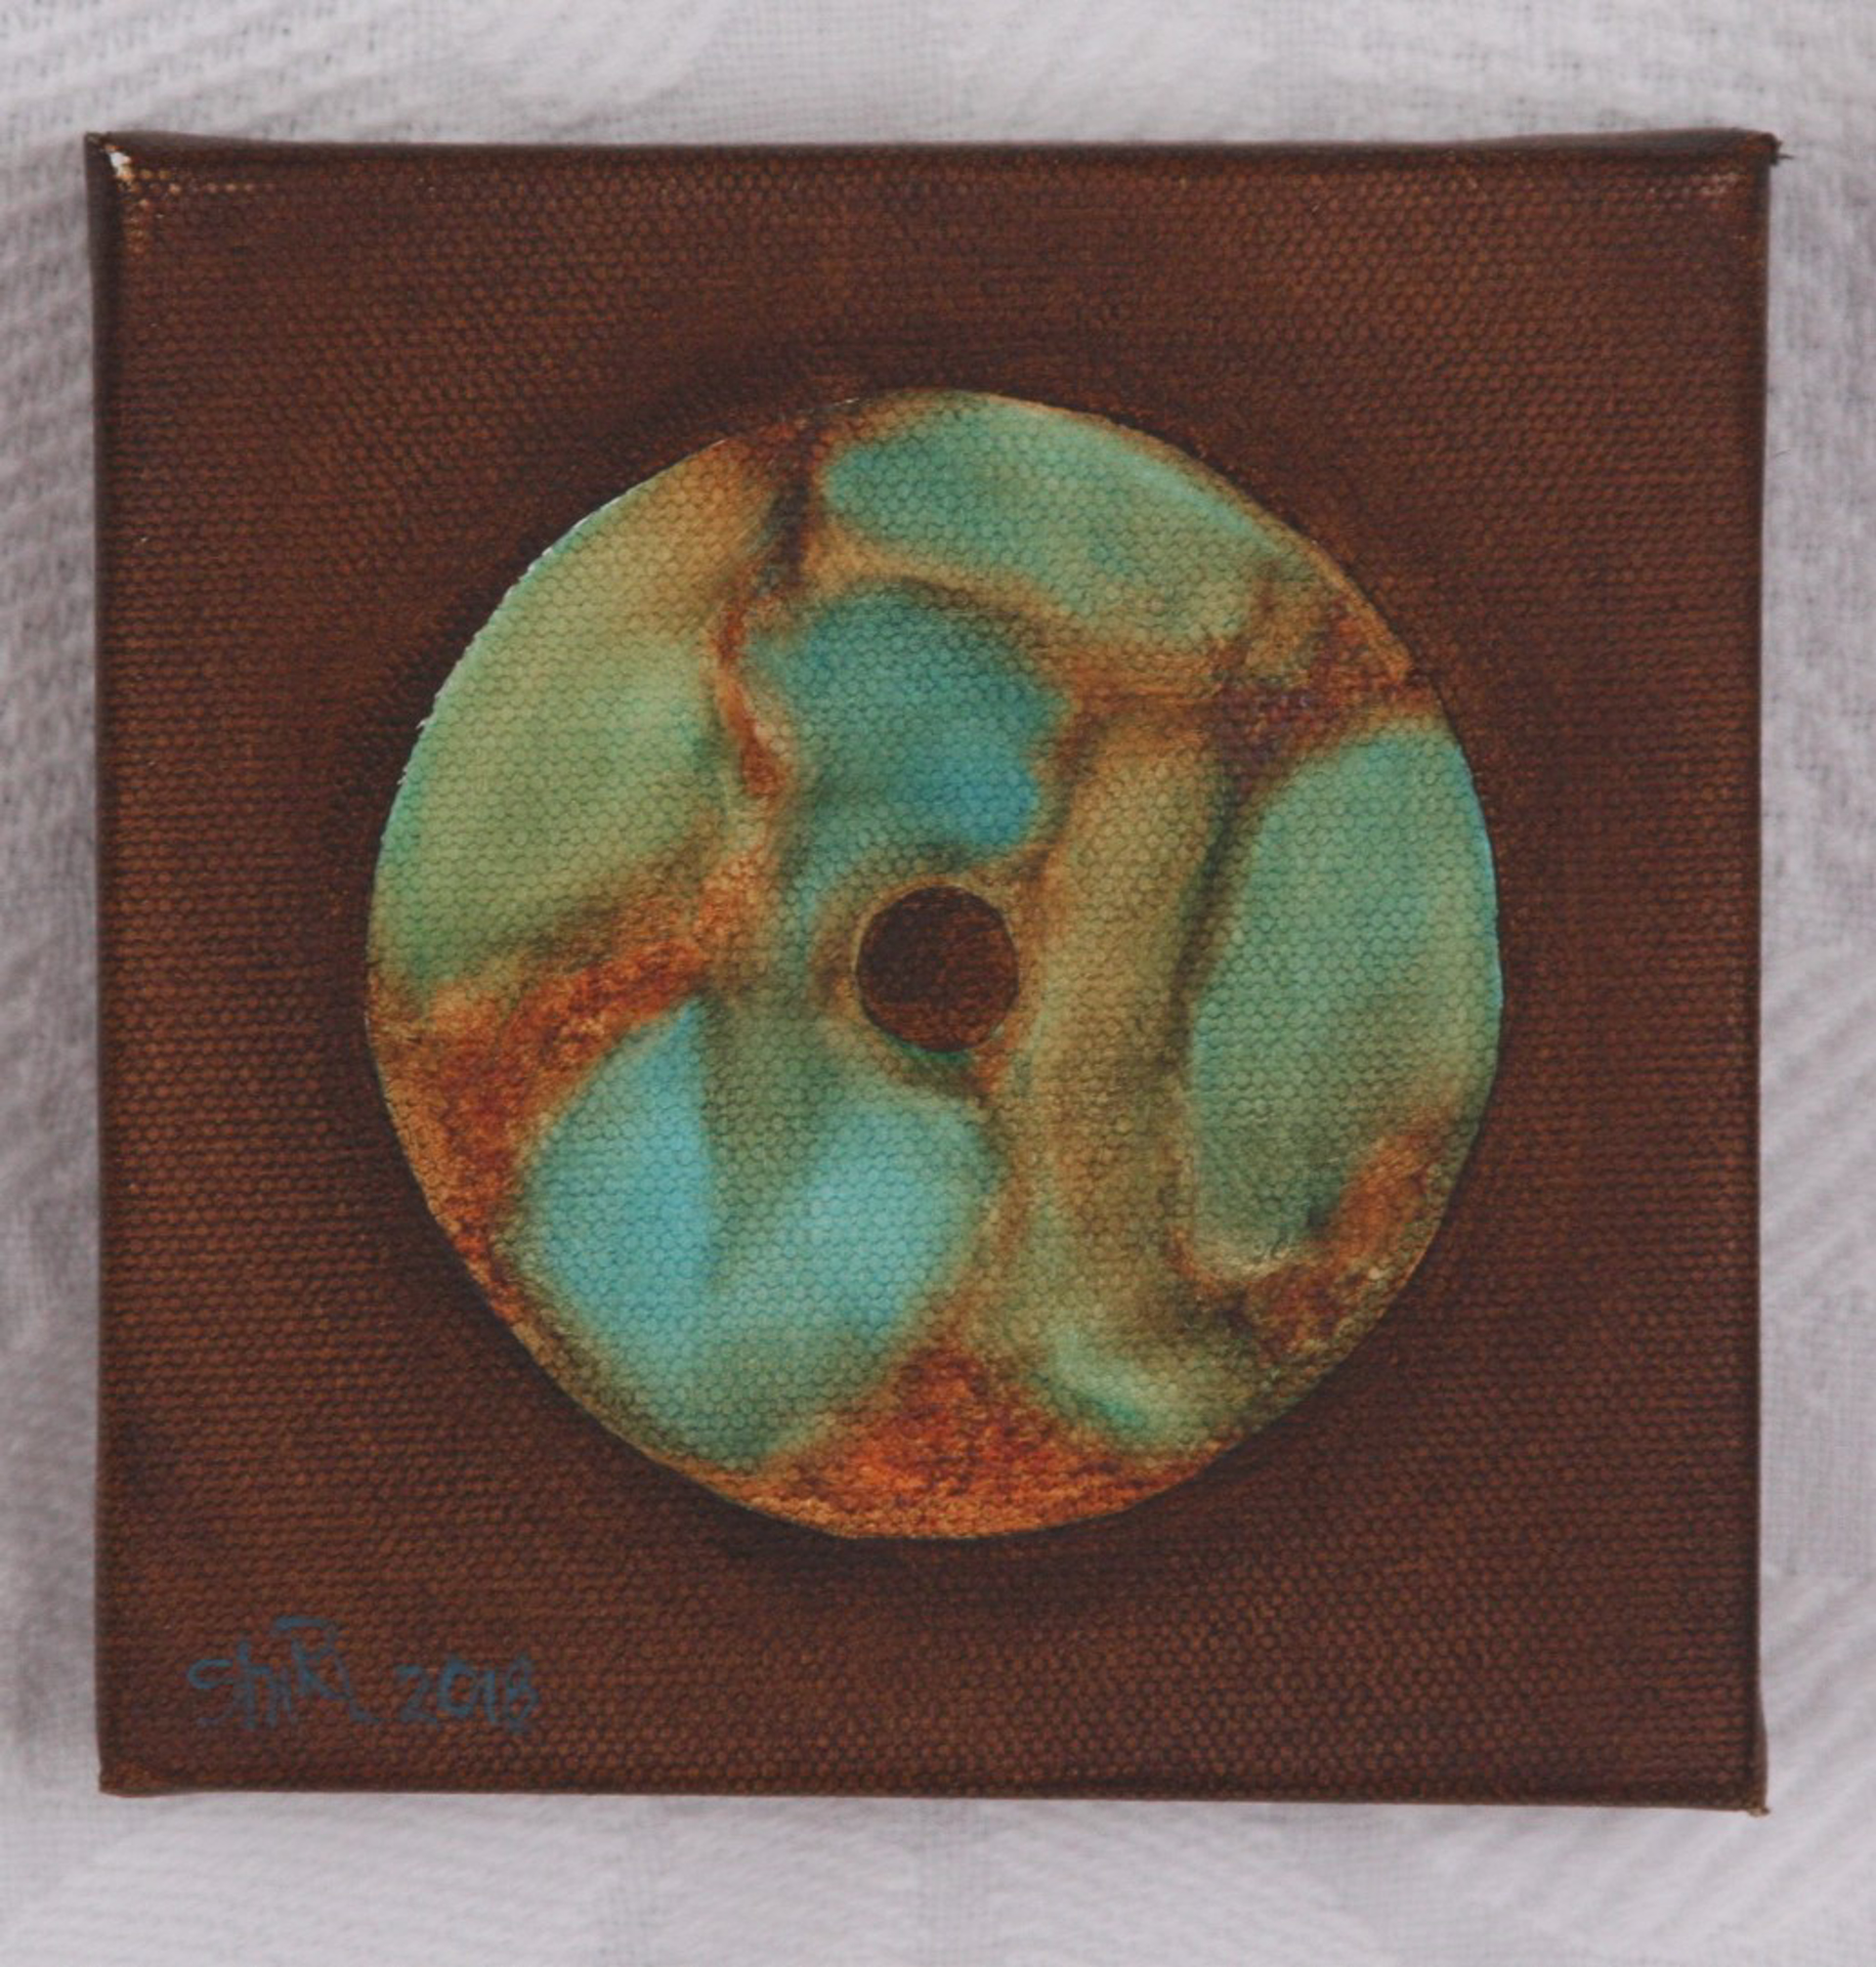 Washer 3 by Shirley Hays (Yamhill, OR)